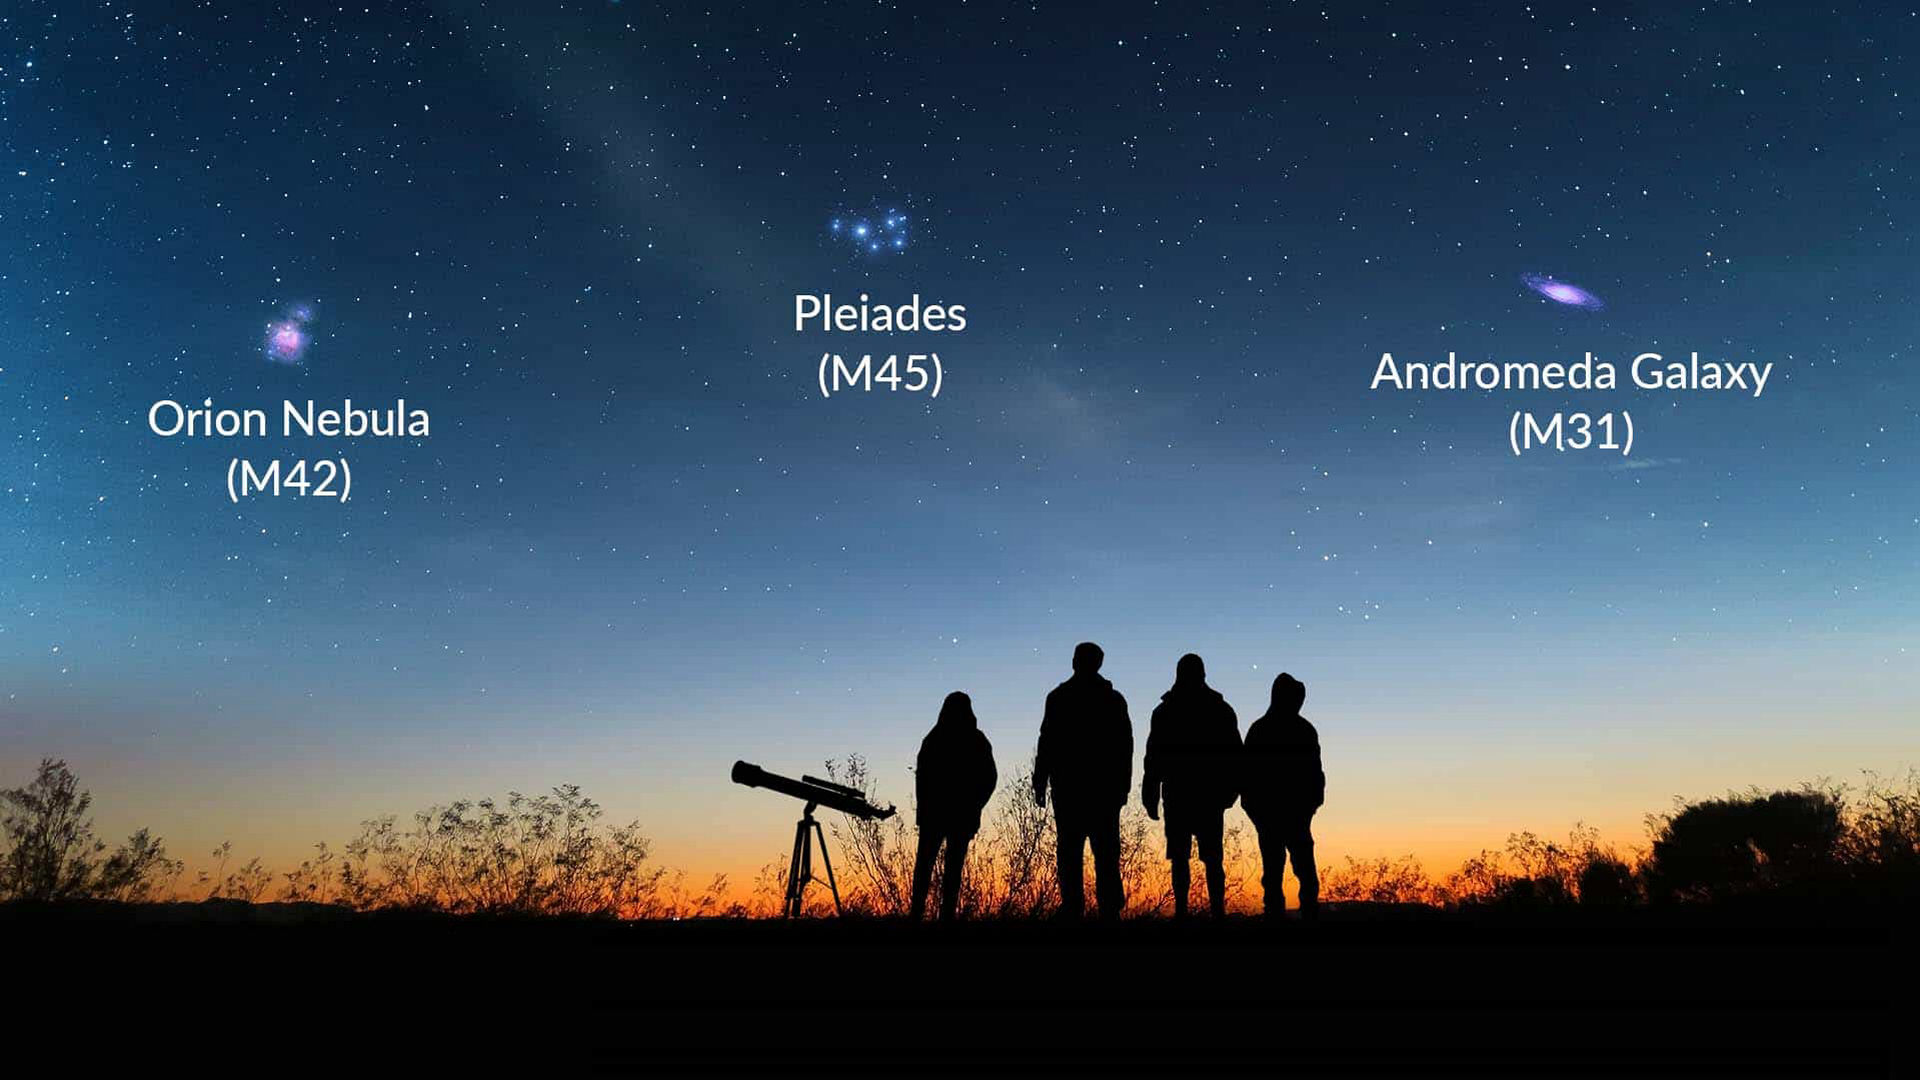 Stargazers looking at the Messier objects